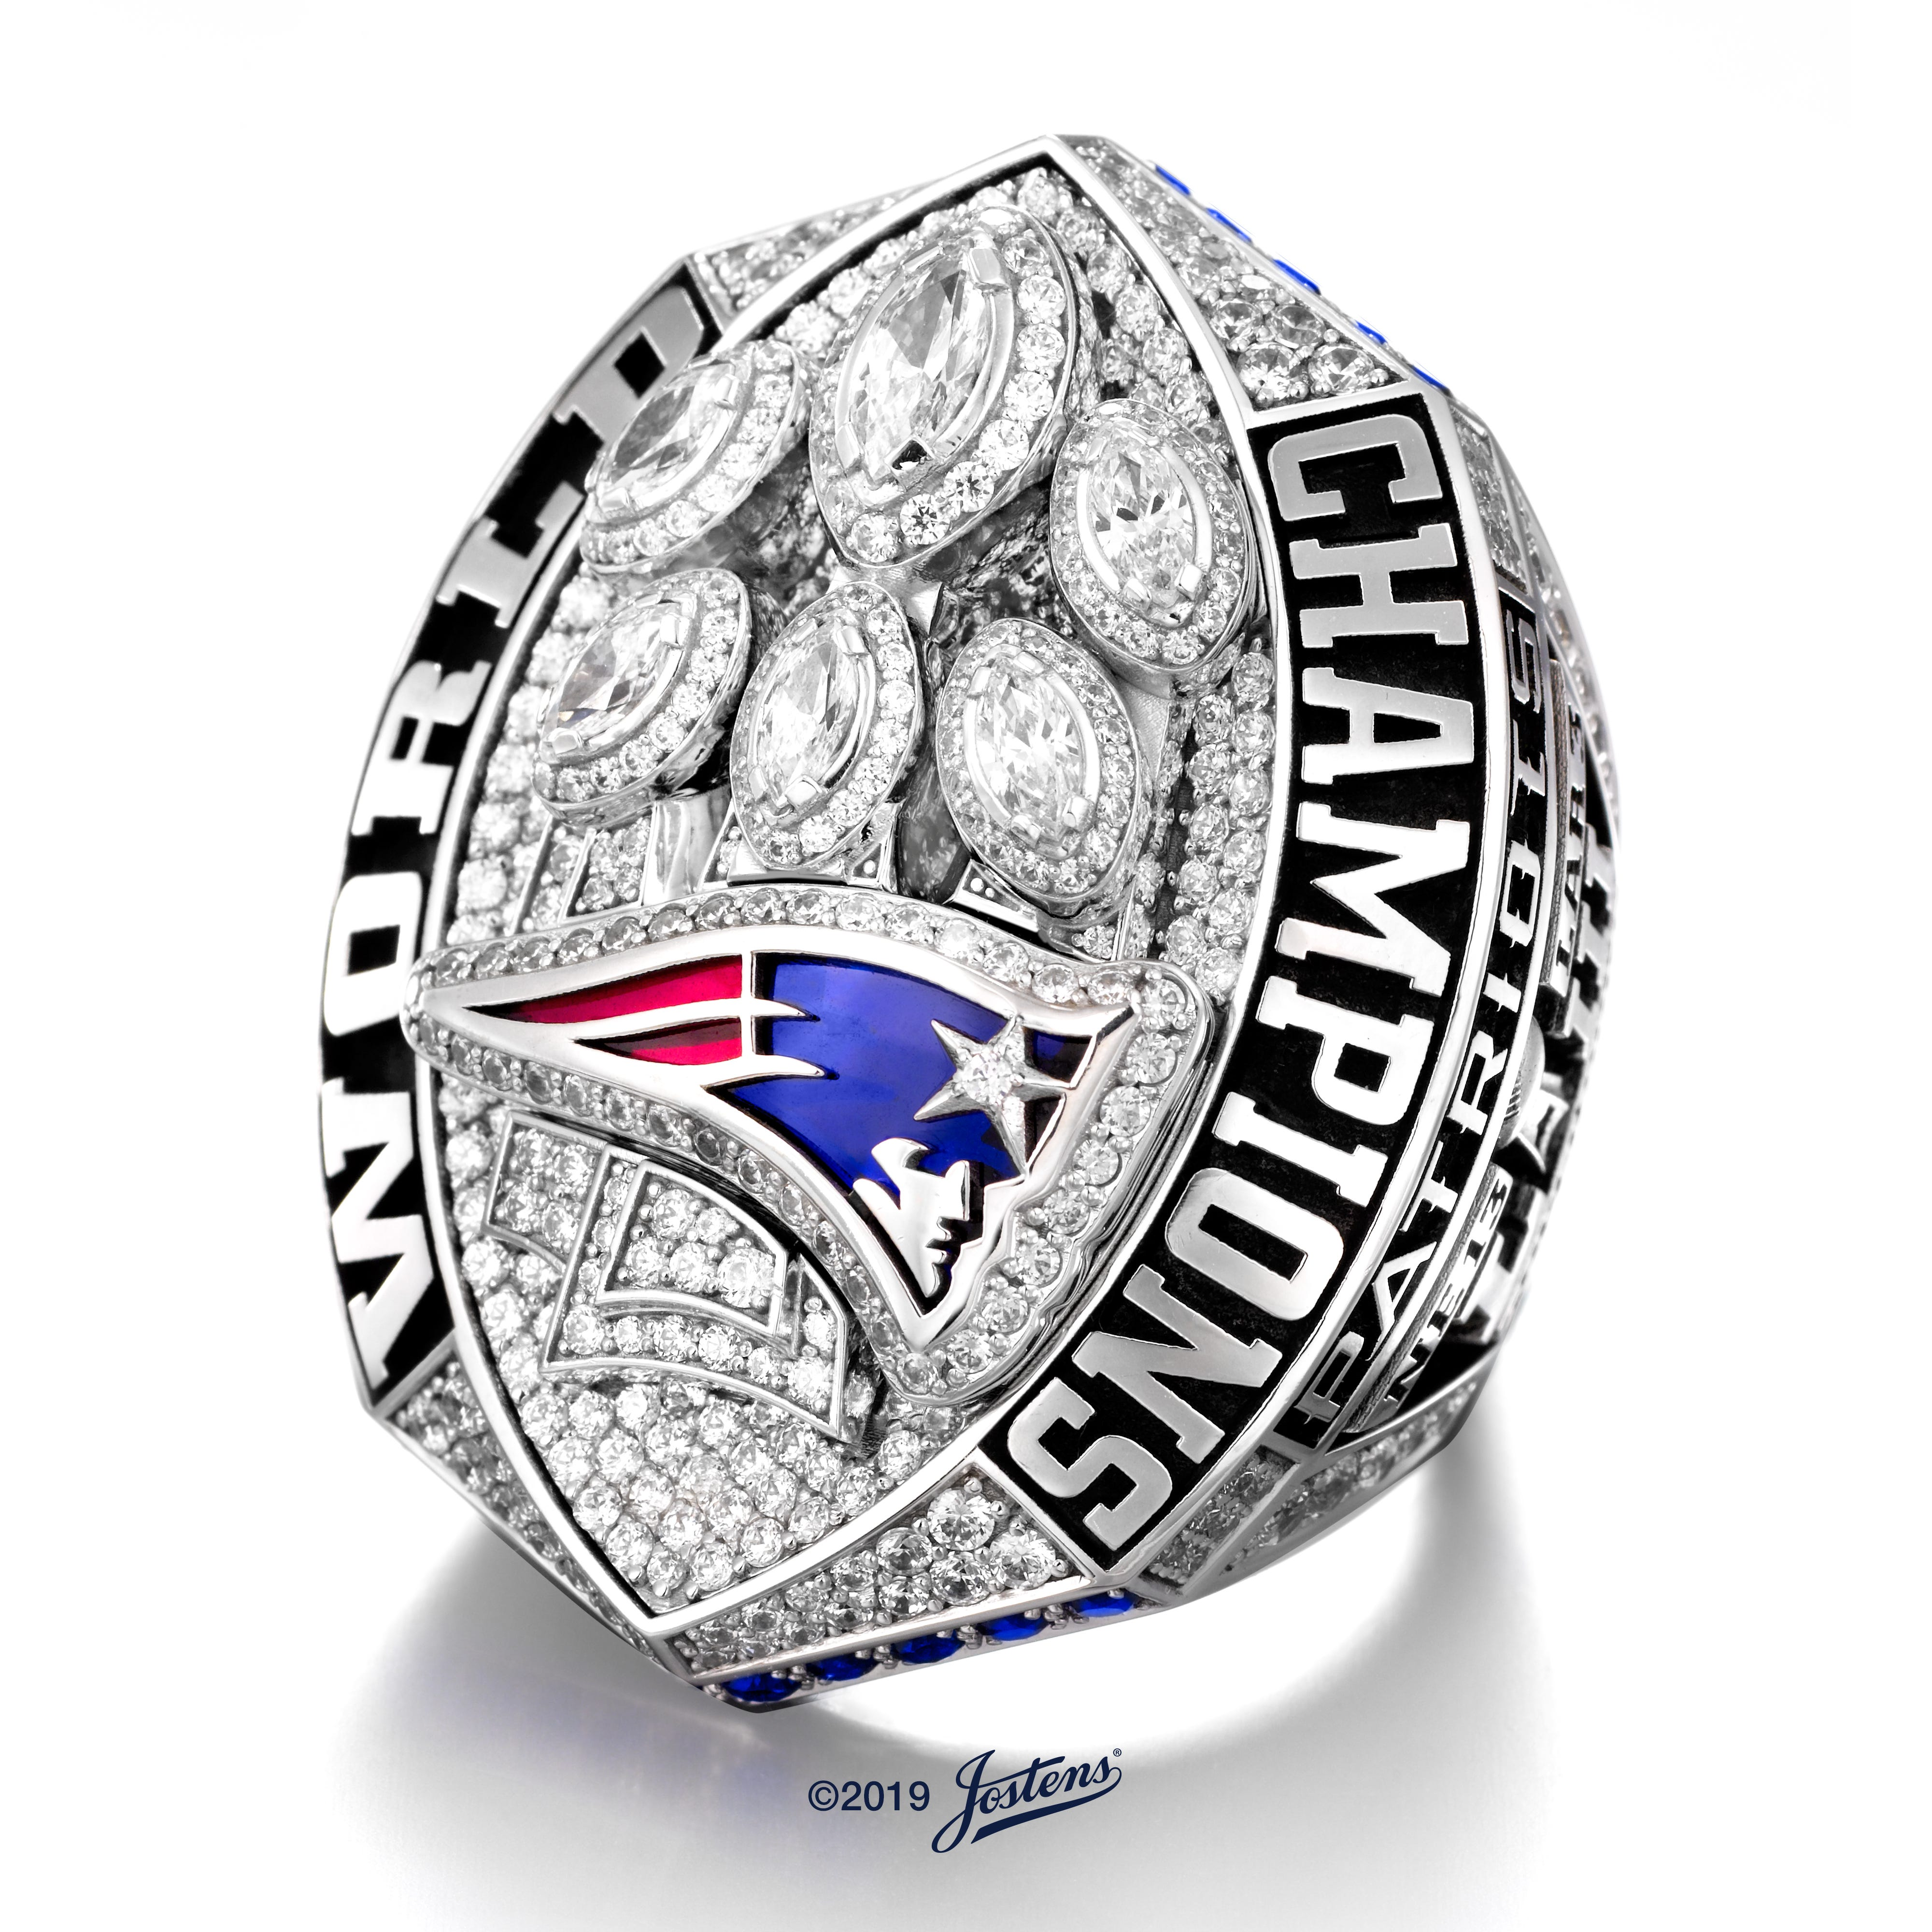 Bigger and better: New England Patriots unveil Super Bowl LIII ring, the largest in history